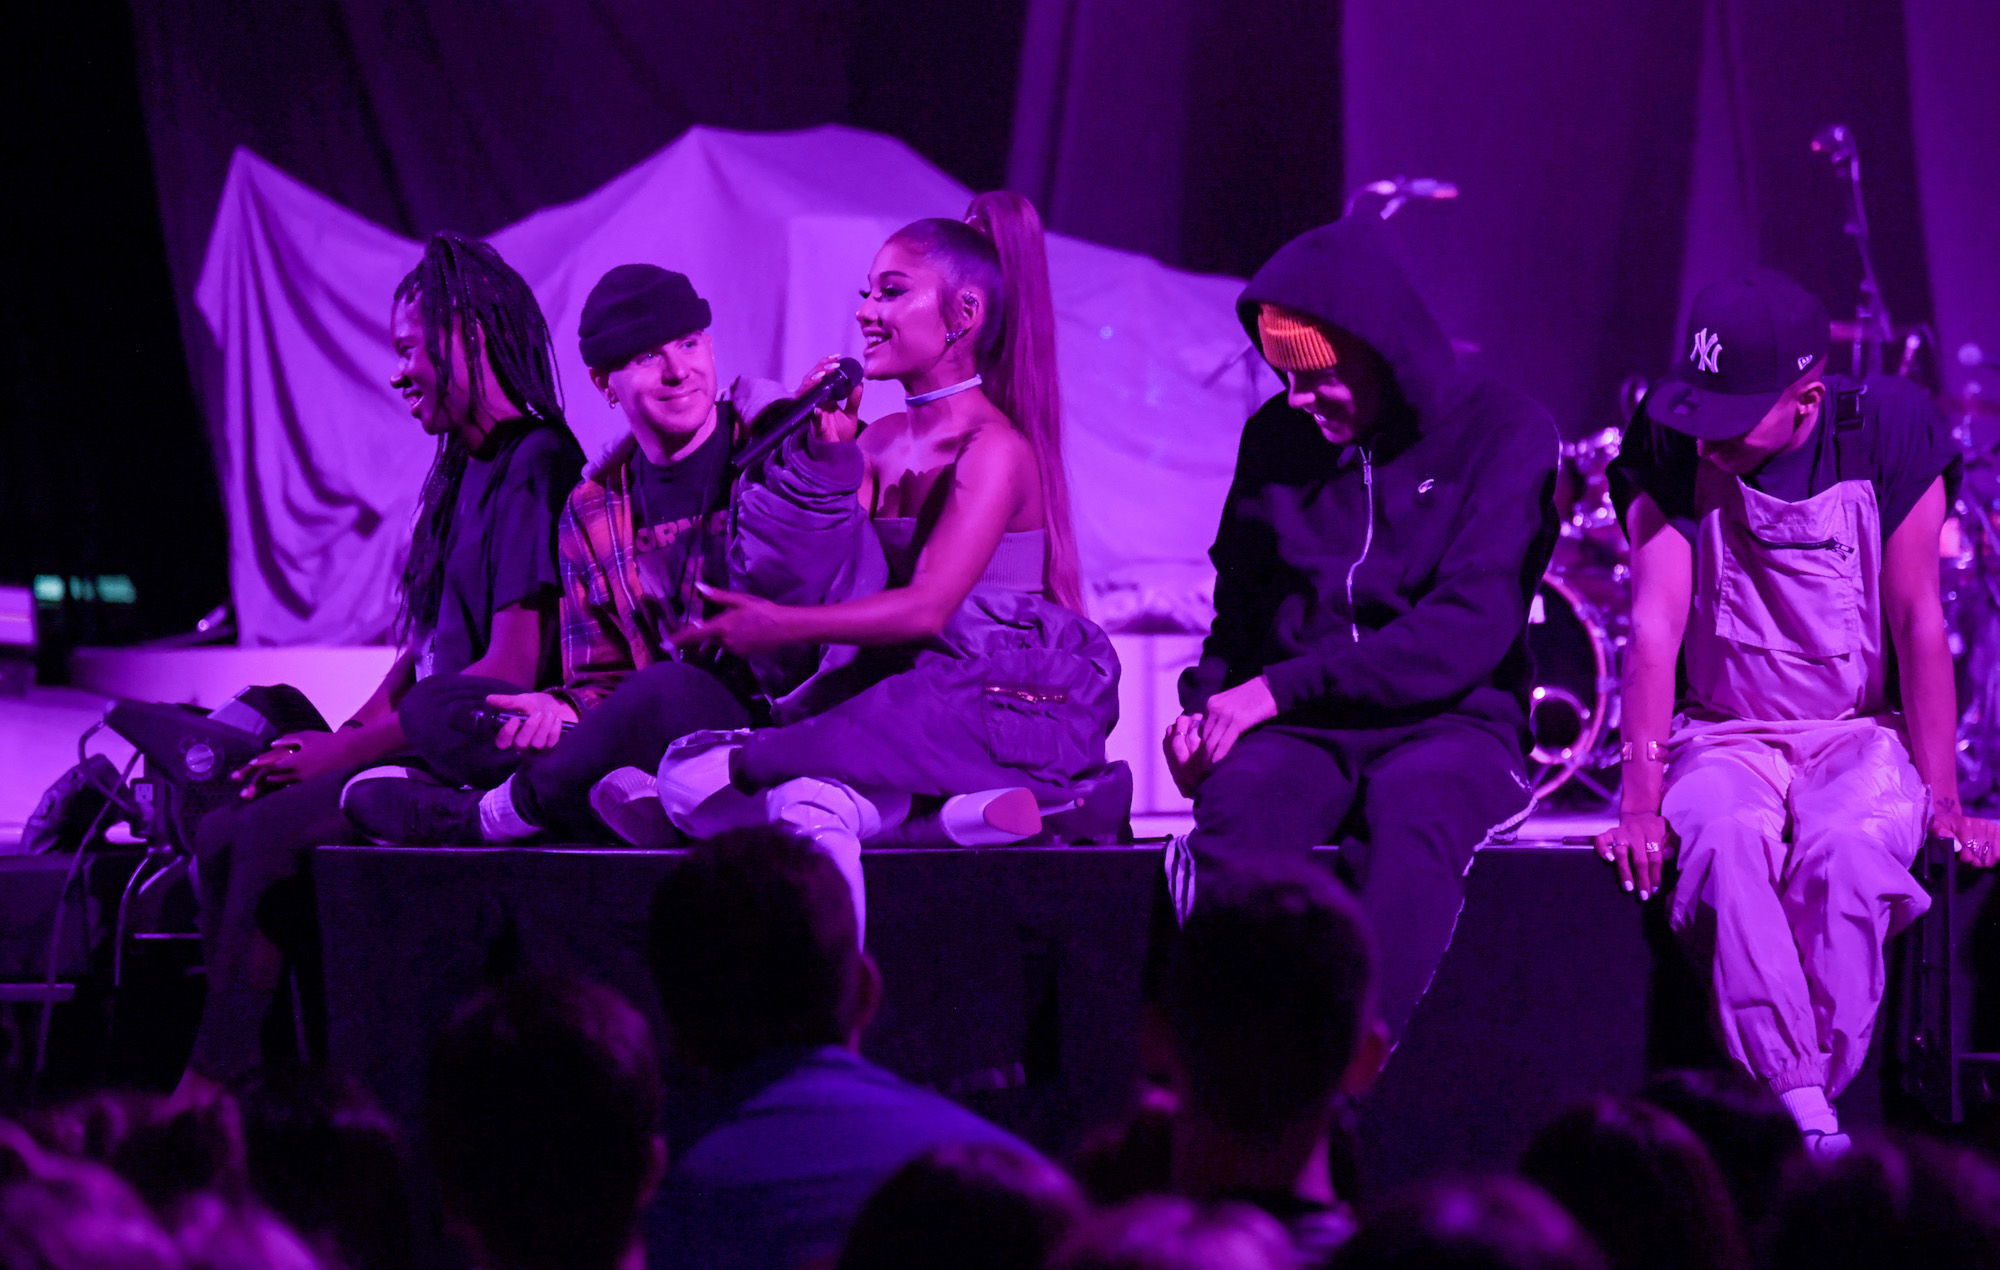 Review Sweetener World Tour 2019 The Light Is Coming To Take Back Everything The Darkness Stole The Corvid Review